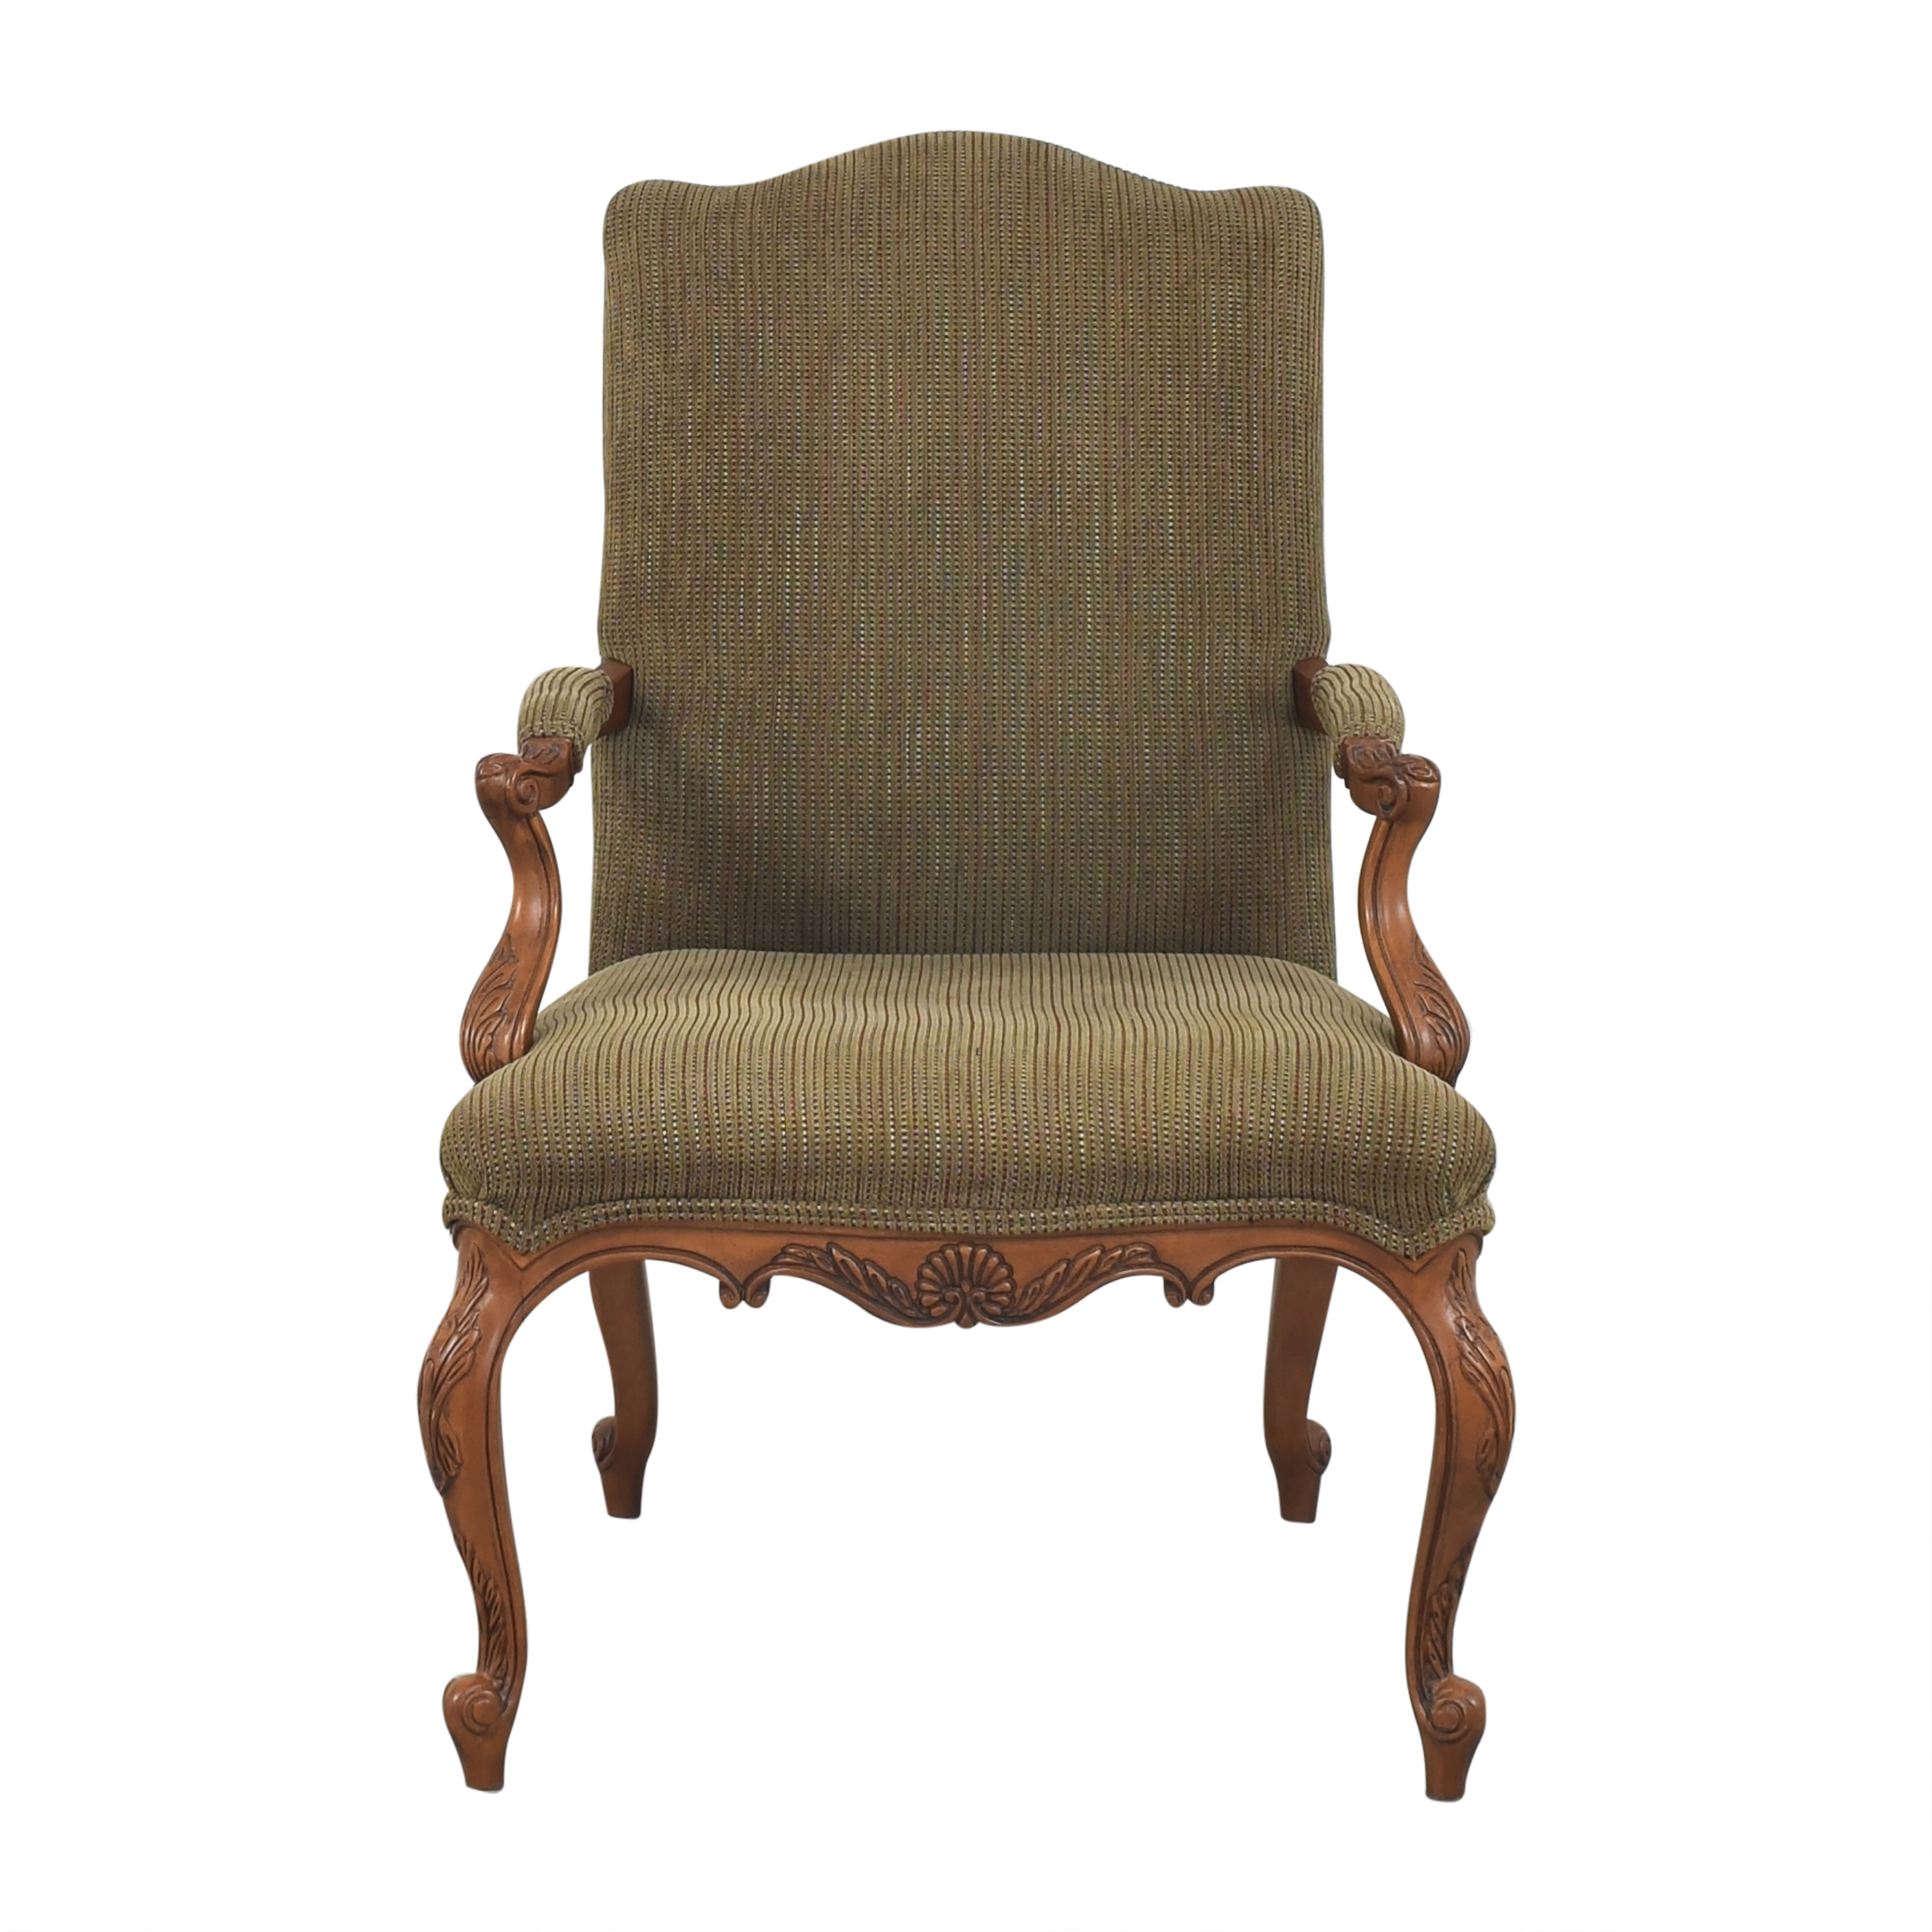 Drexel Heritage Drexel Heritage Accent Chair Accent Chairs